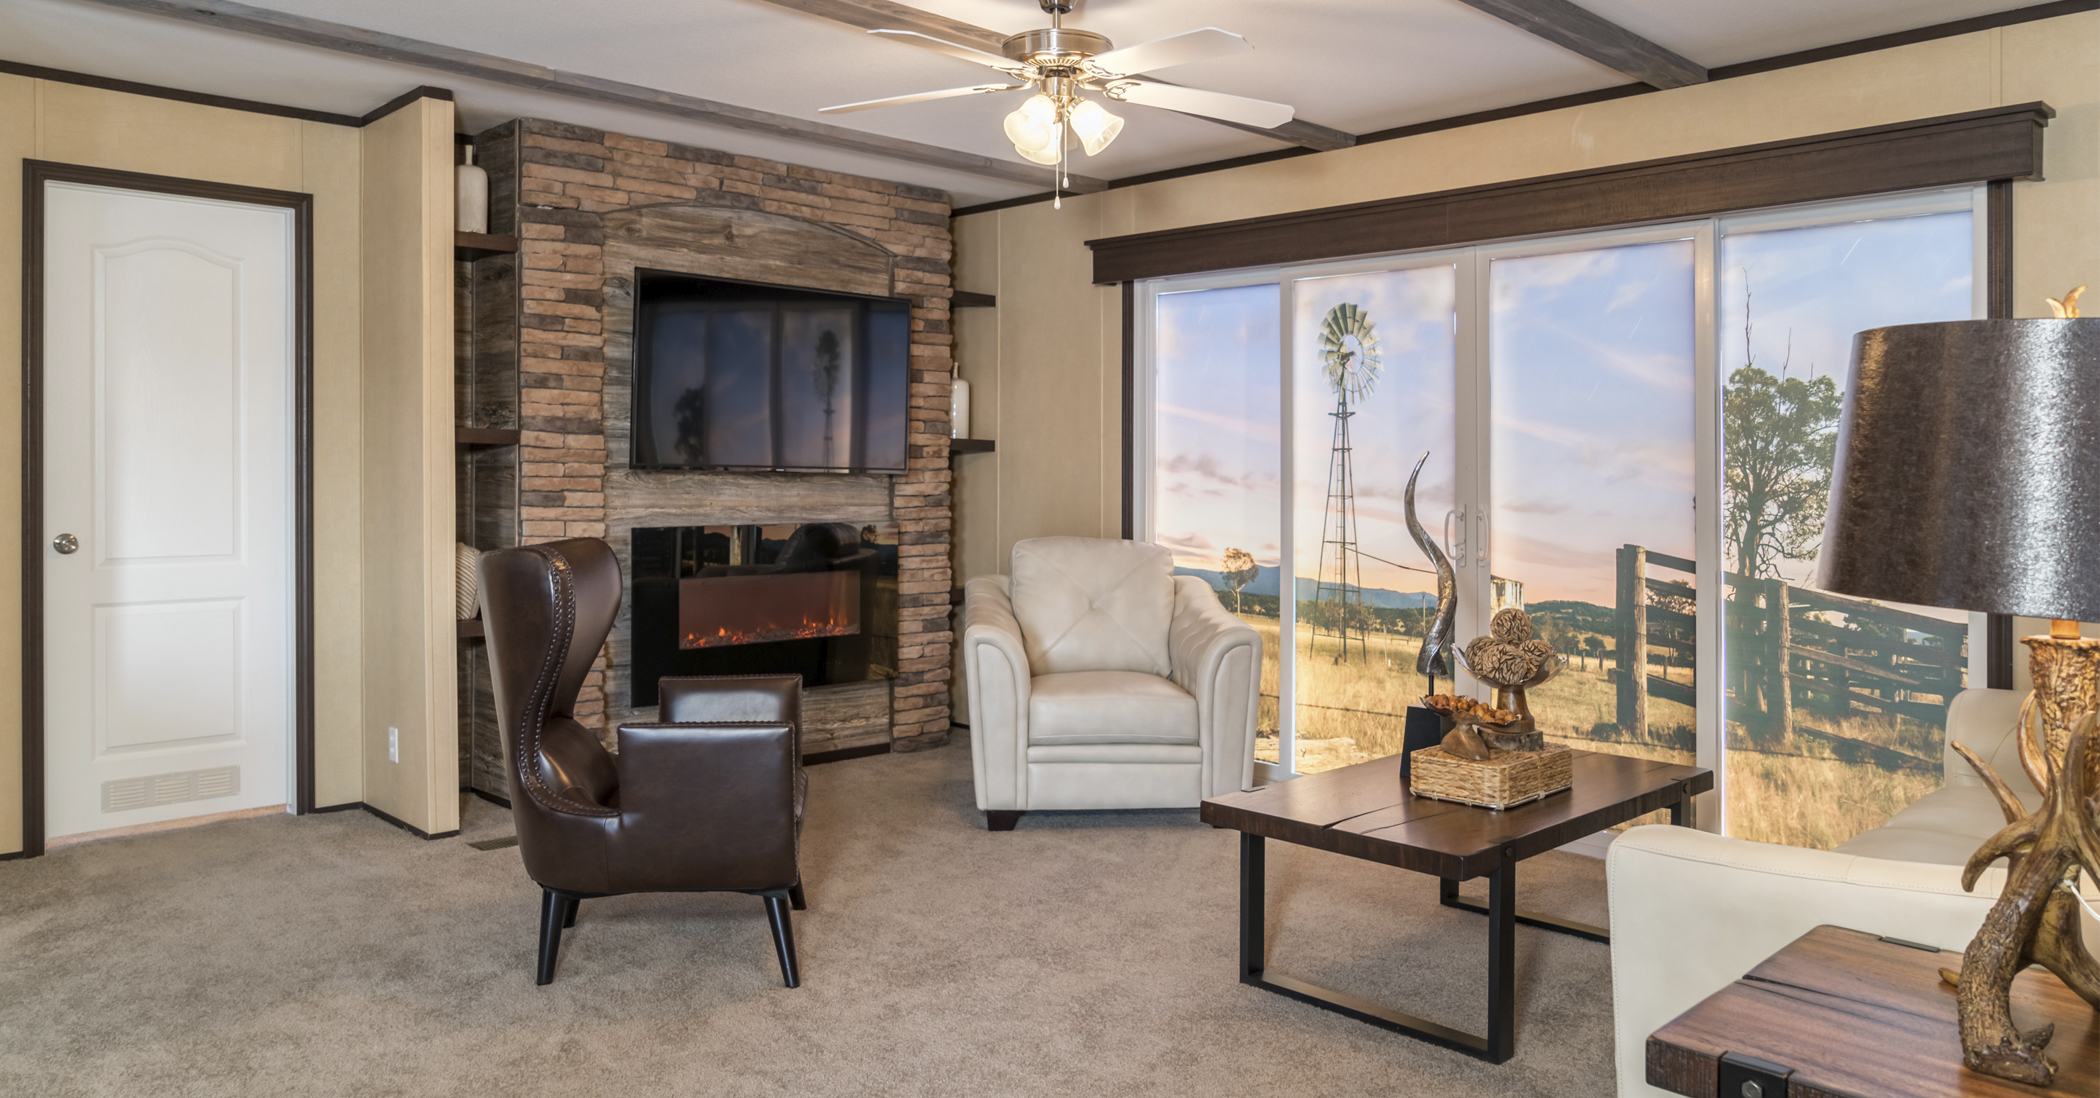 picture of a home interior living room and fire place